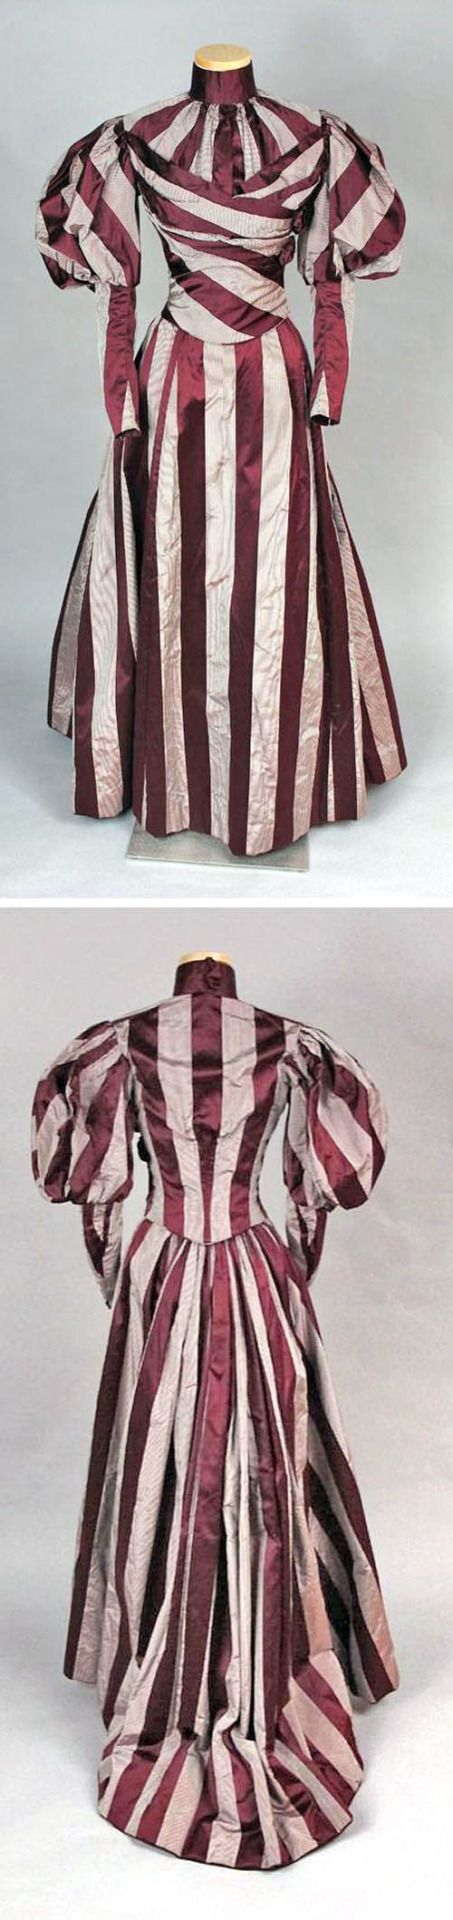 Two-piece day dress, ca. 1897. Maroon silk satin with plain-woven stripes of thin white & black stripes lined with tan cotton. Closely fitted, with boned seams & darts. Skirt has very narrow pleats every few inches for ease of movement; pocket in rear right seam. emuseum of the Connecticut Historical SocietySource